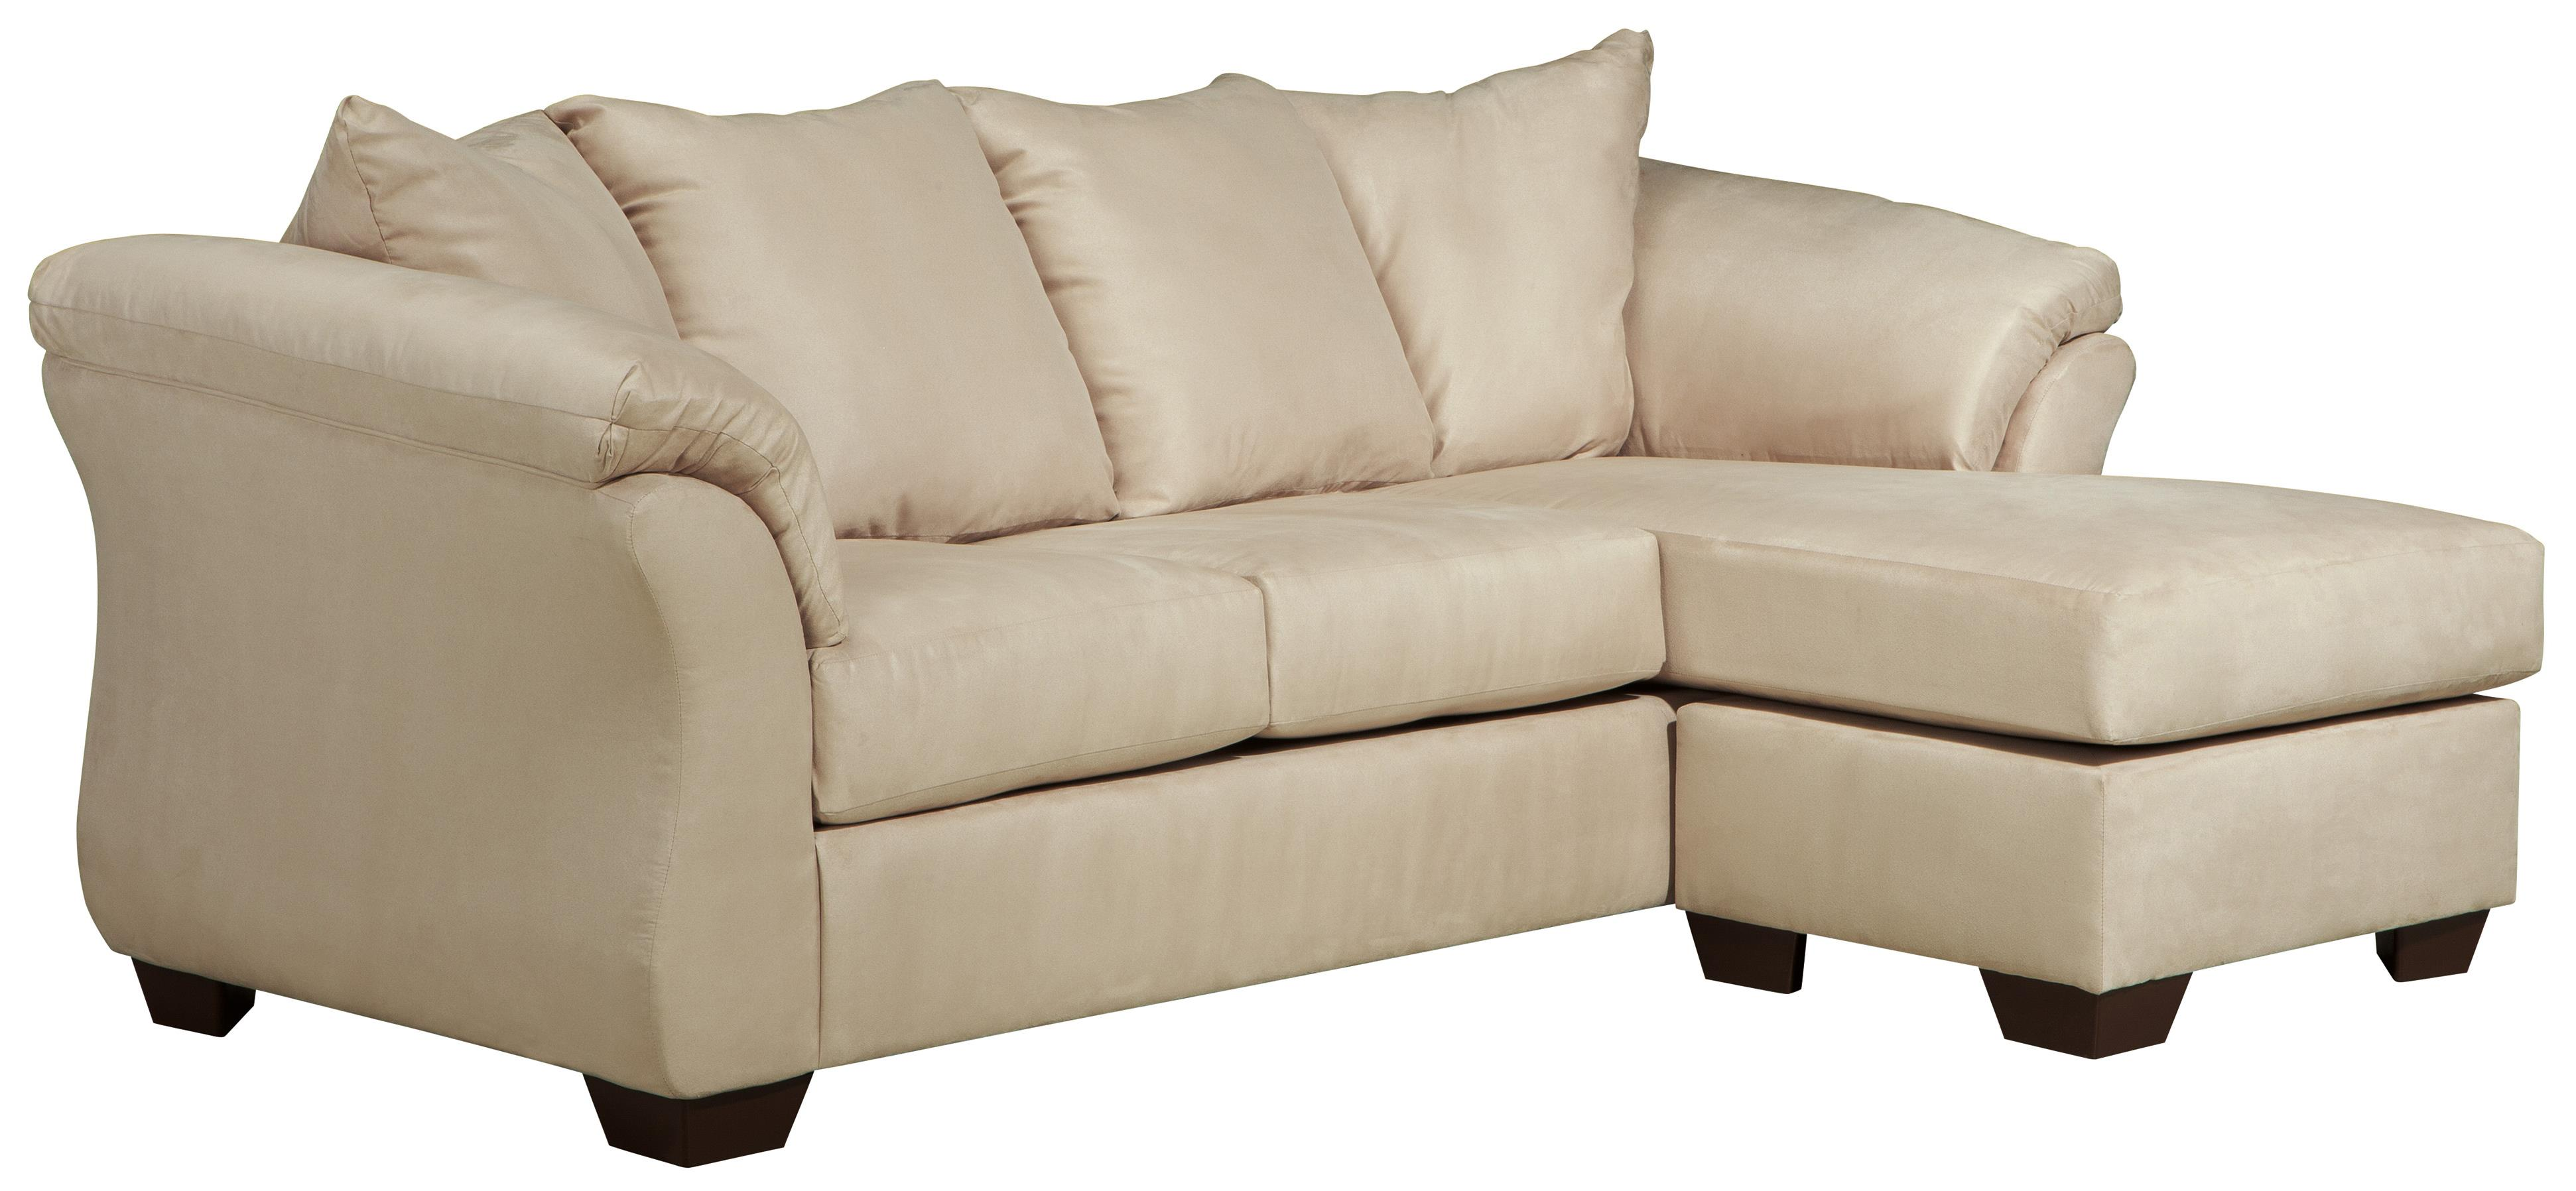 Contemporary sofa chaise with flared back pillows by for Ashley furniture sofa chaise